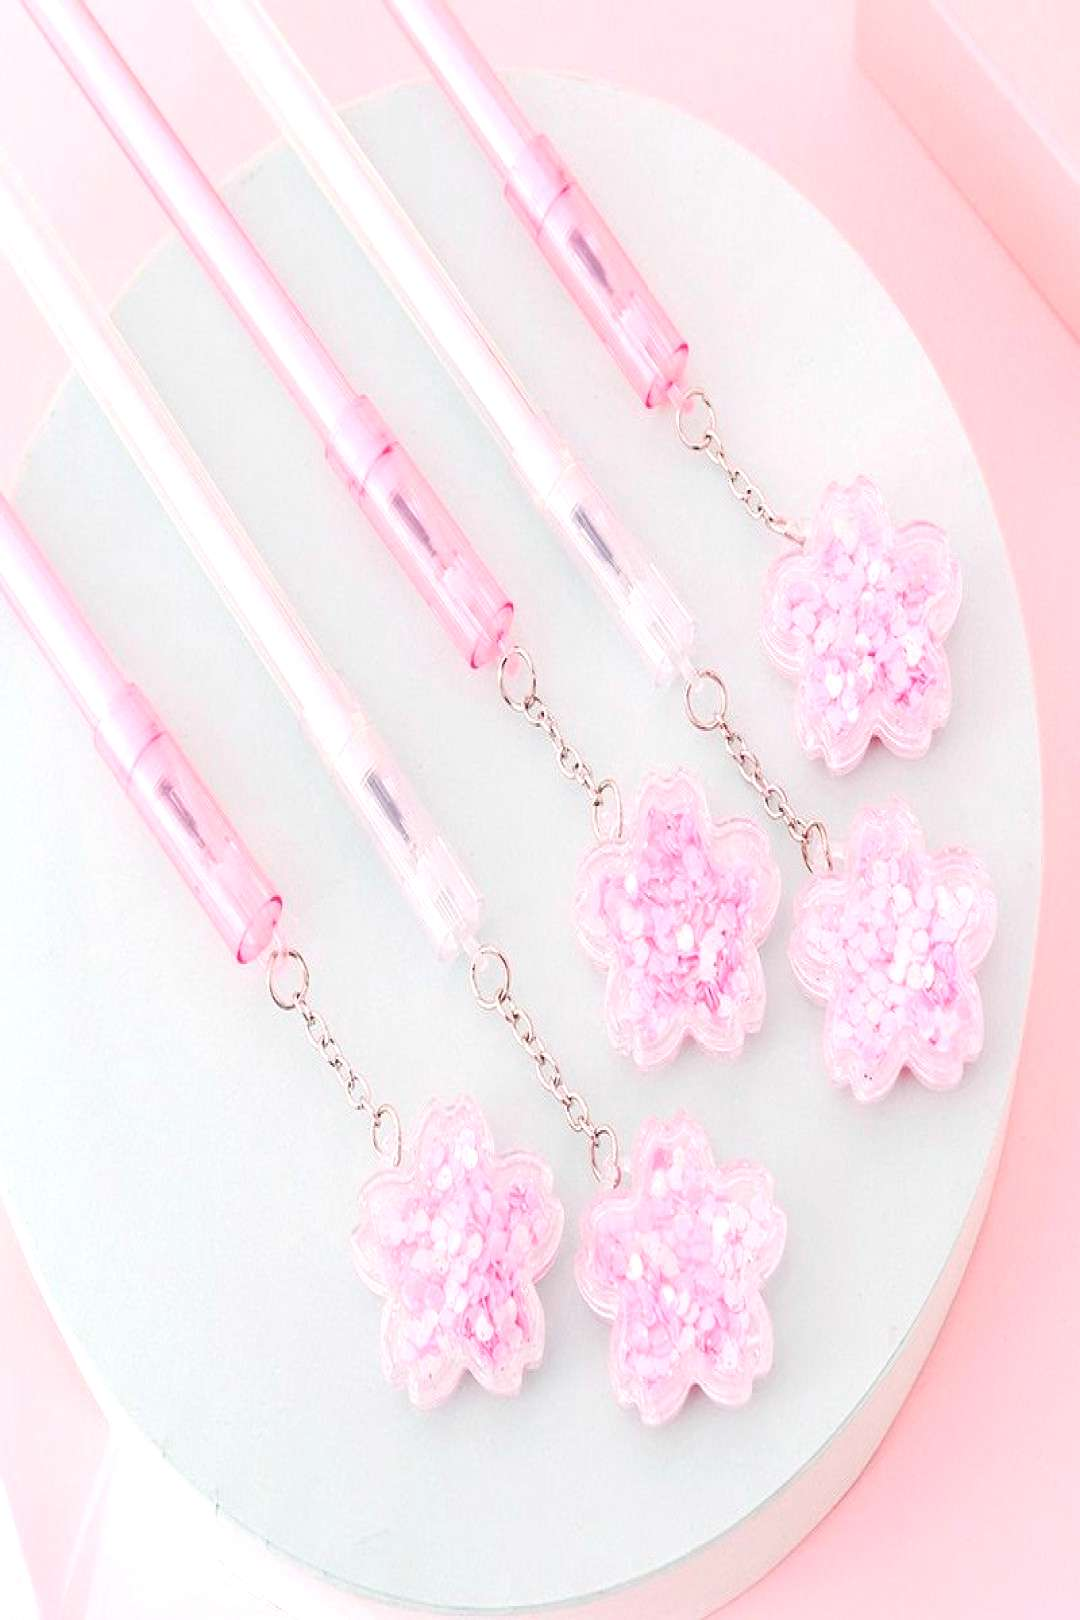 1pcs Quicksand Sequined Cherry Blossom Pendant Gel Pen Black Ink Cute Stationery School Office Supp